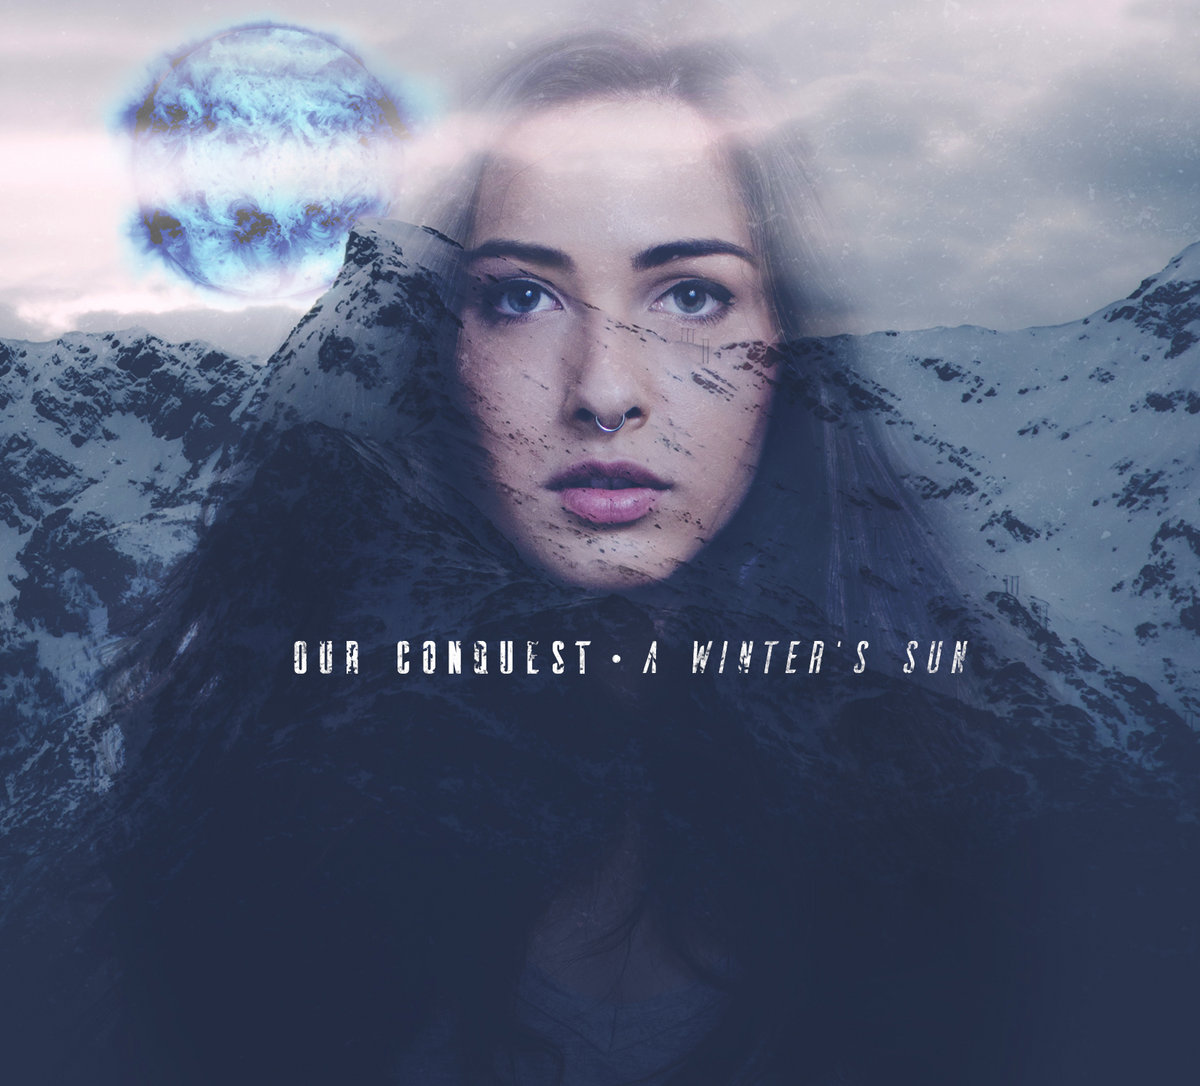 Our Conquest - A Winter's Sun - EP - Cover